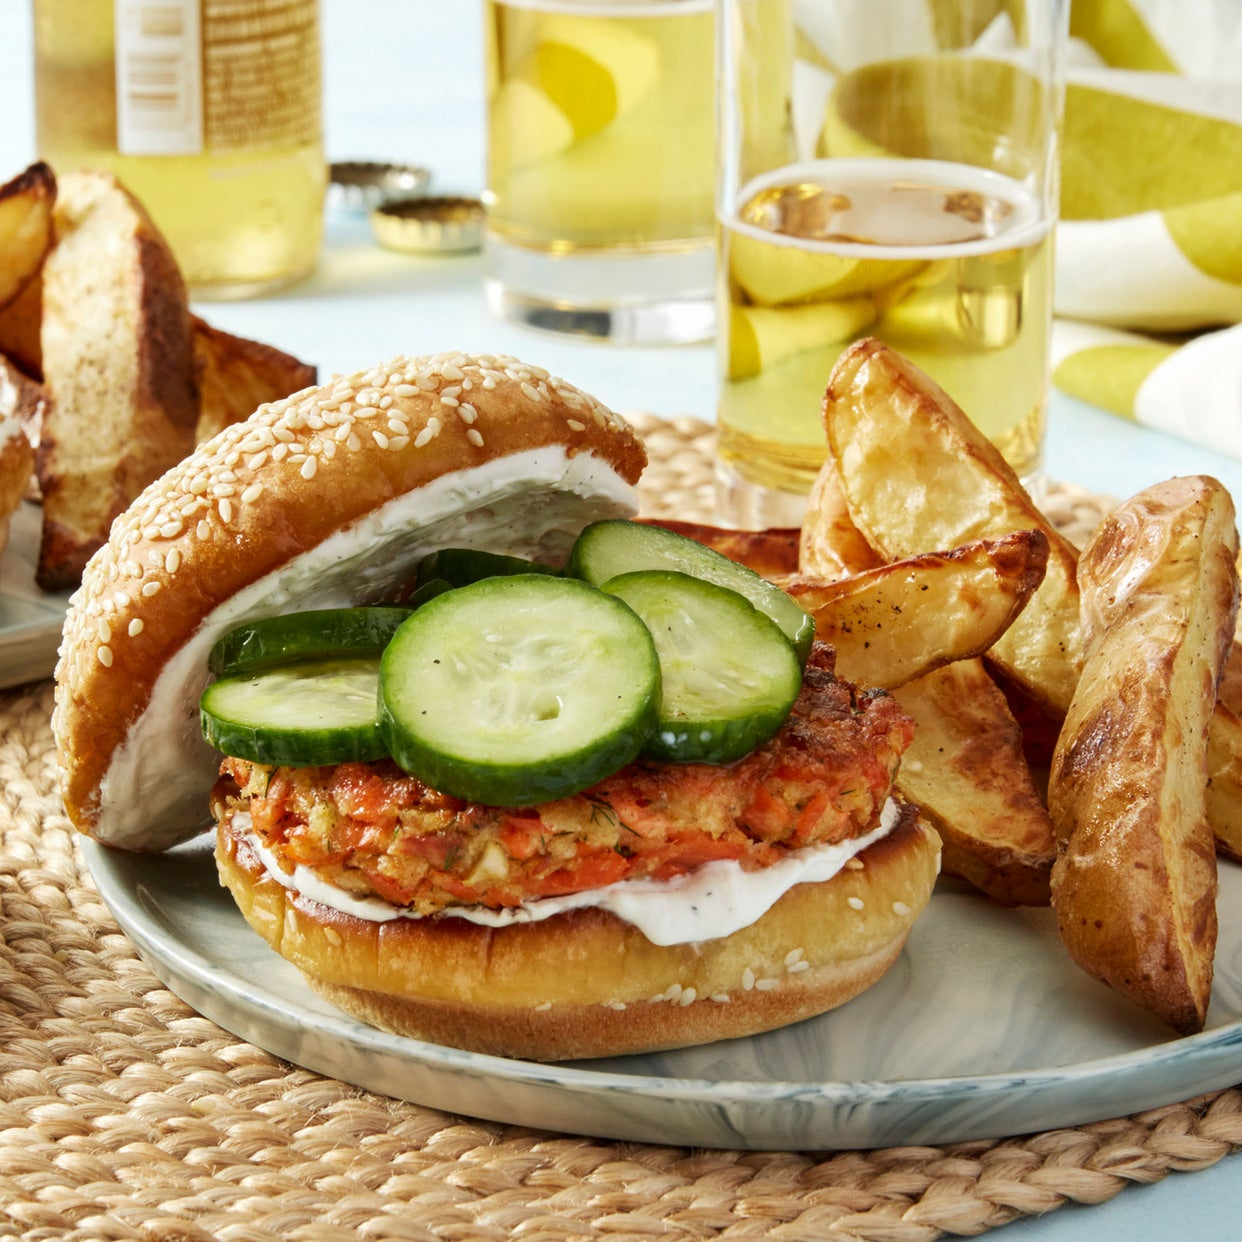 Salmon-Dill Burgers with Marinated Cucumber & Roasted Potatoes